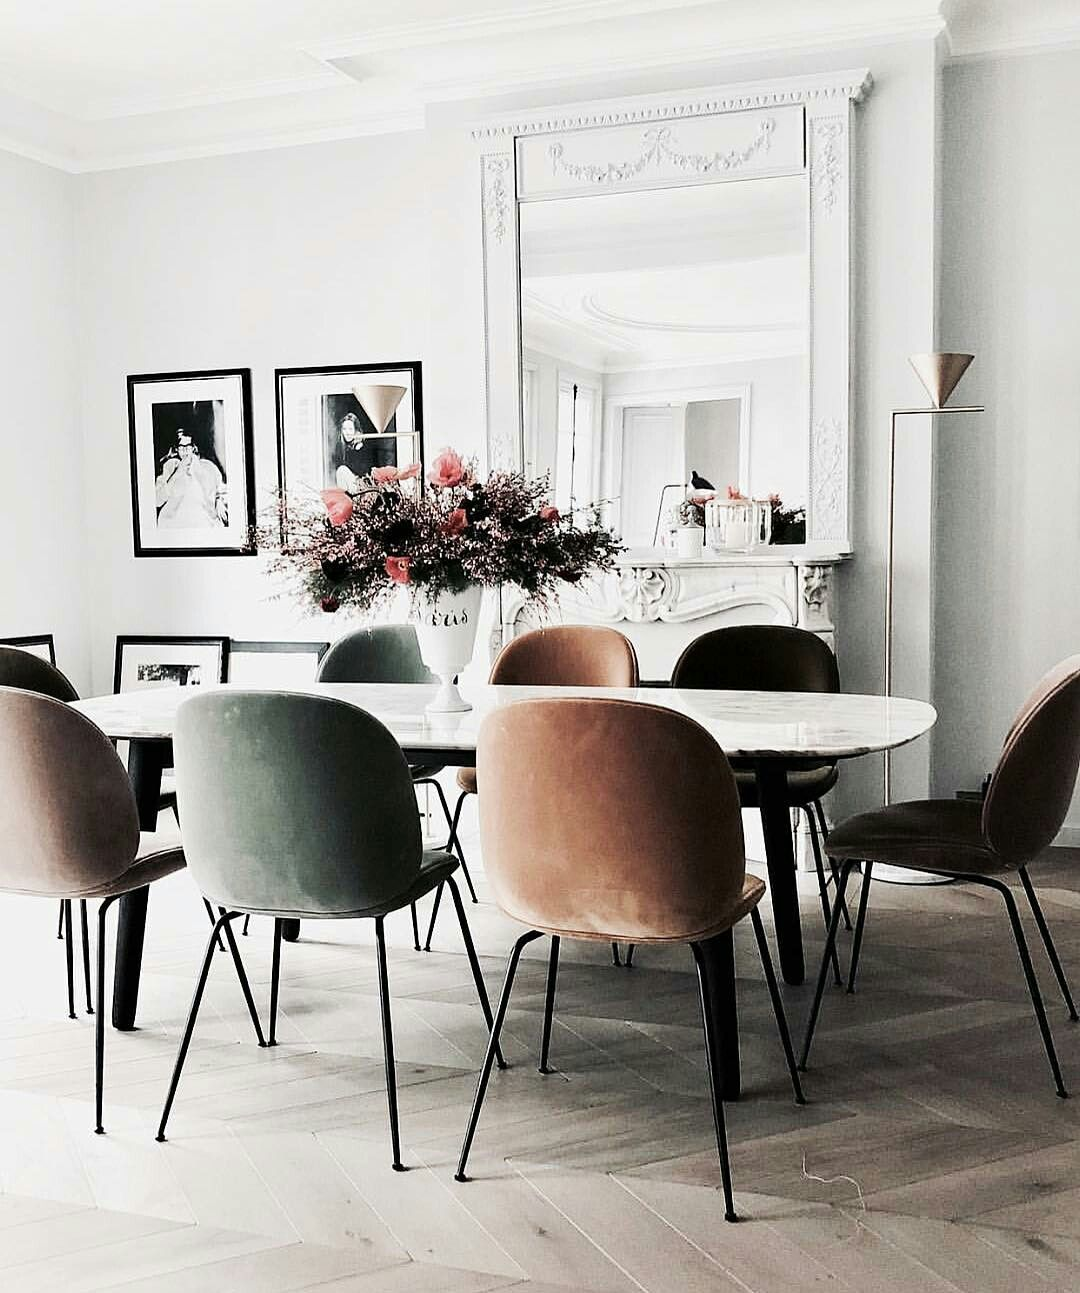 Rooms To Go Dining Sets: Scandinavian Dining Room